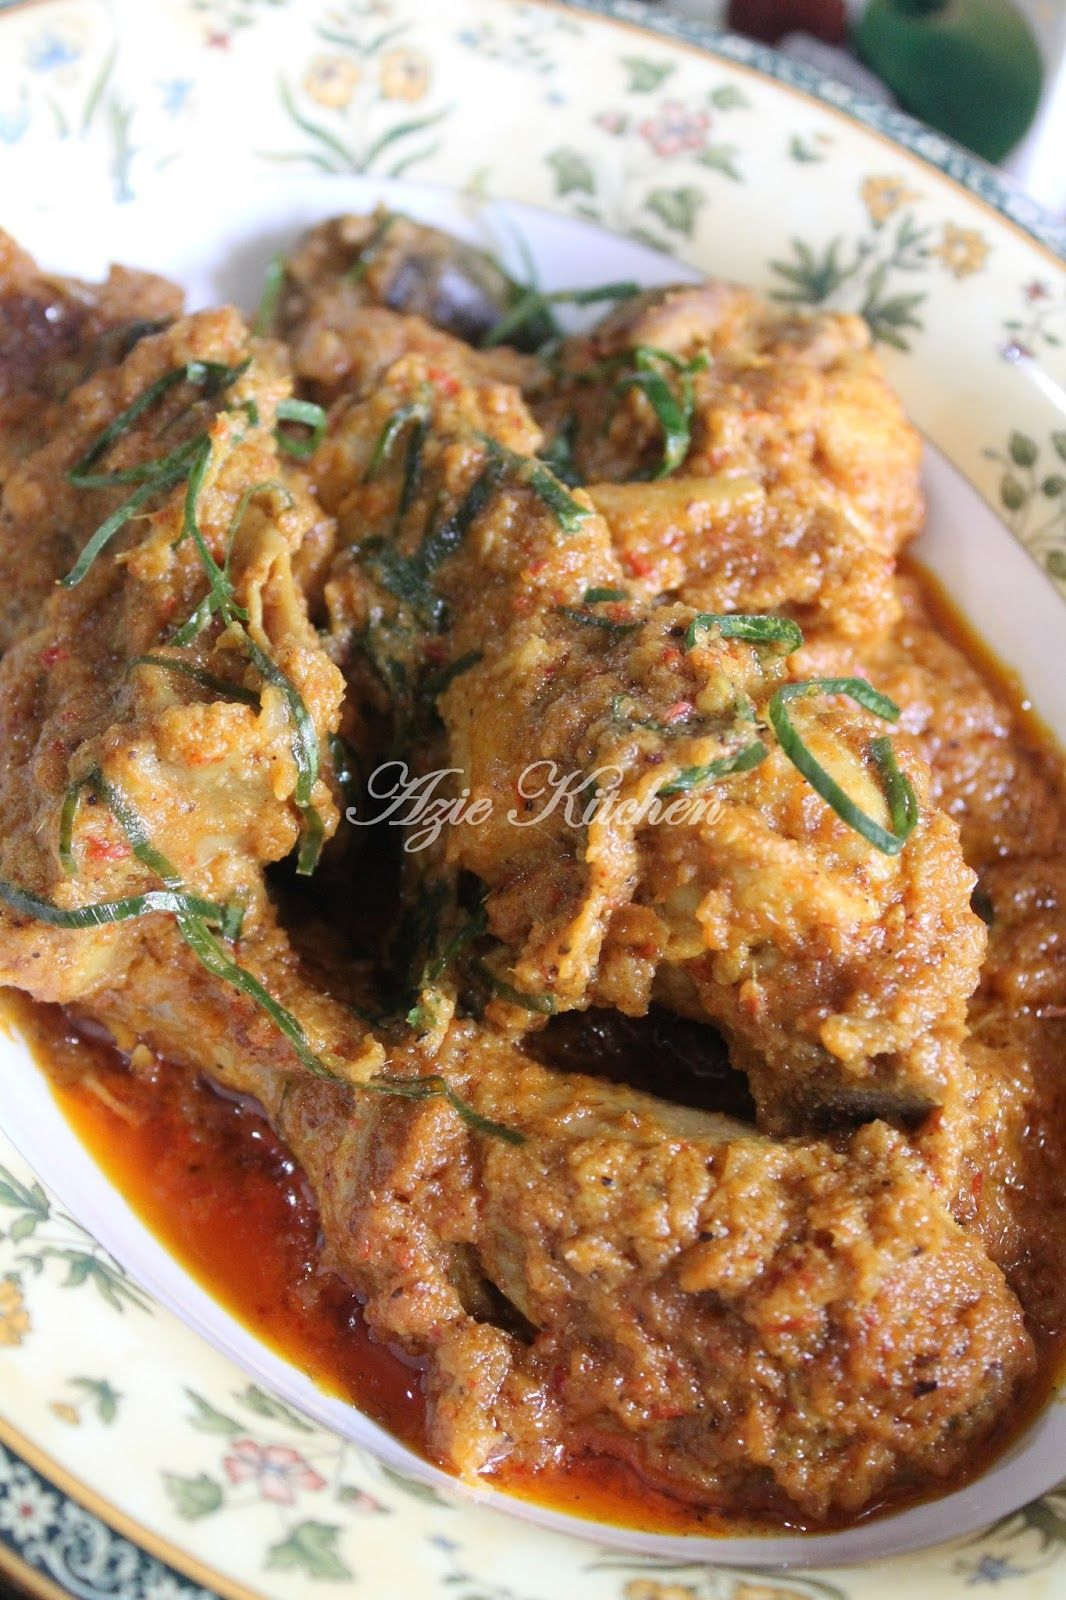 Rendang Ayam Buah Keras Food Recipes Chicken